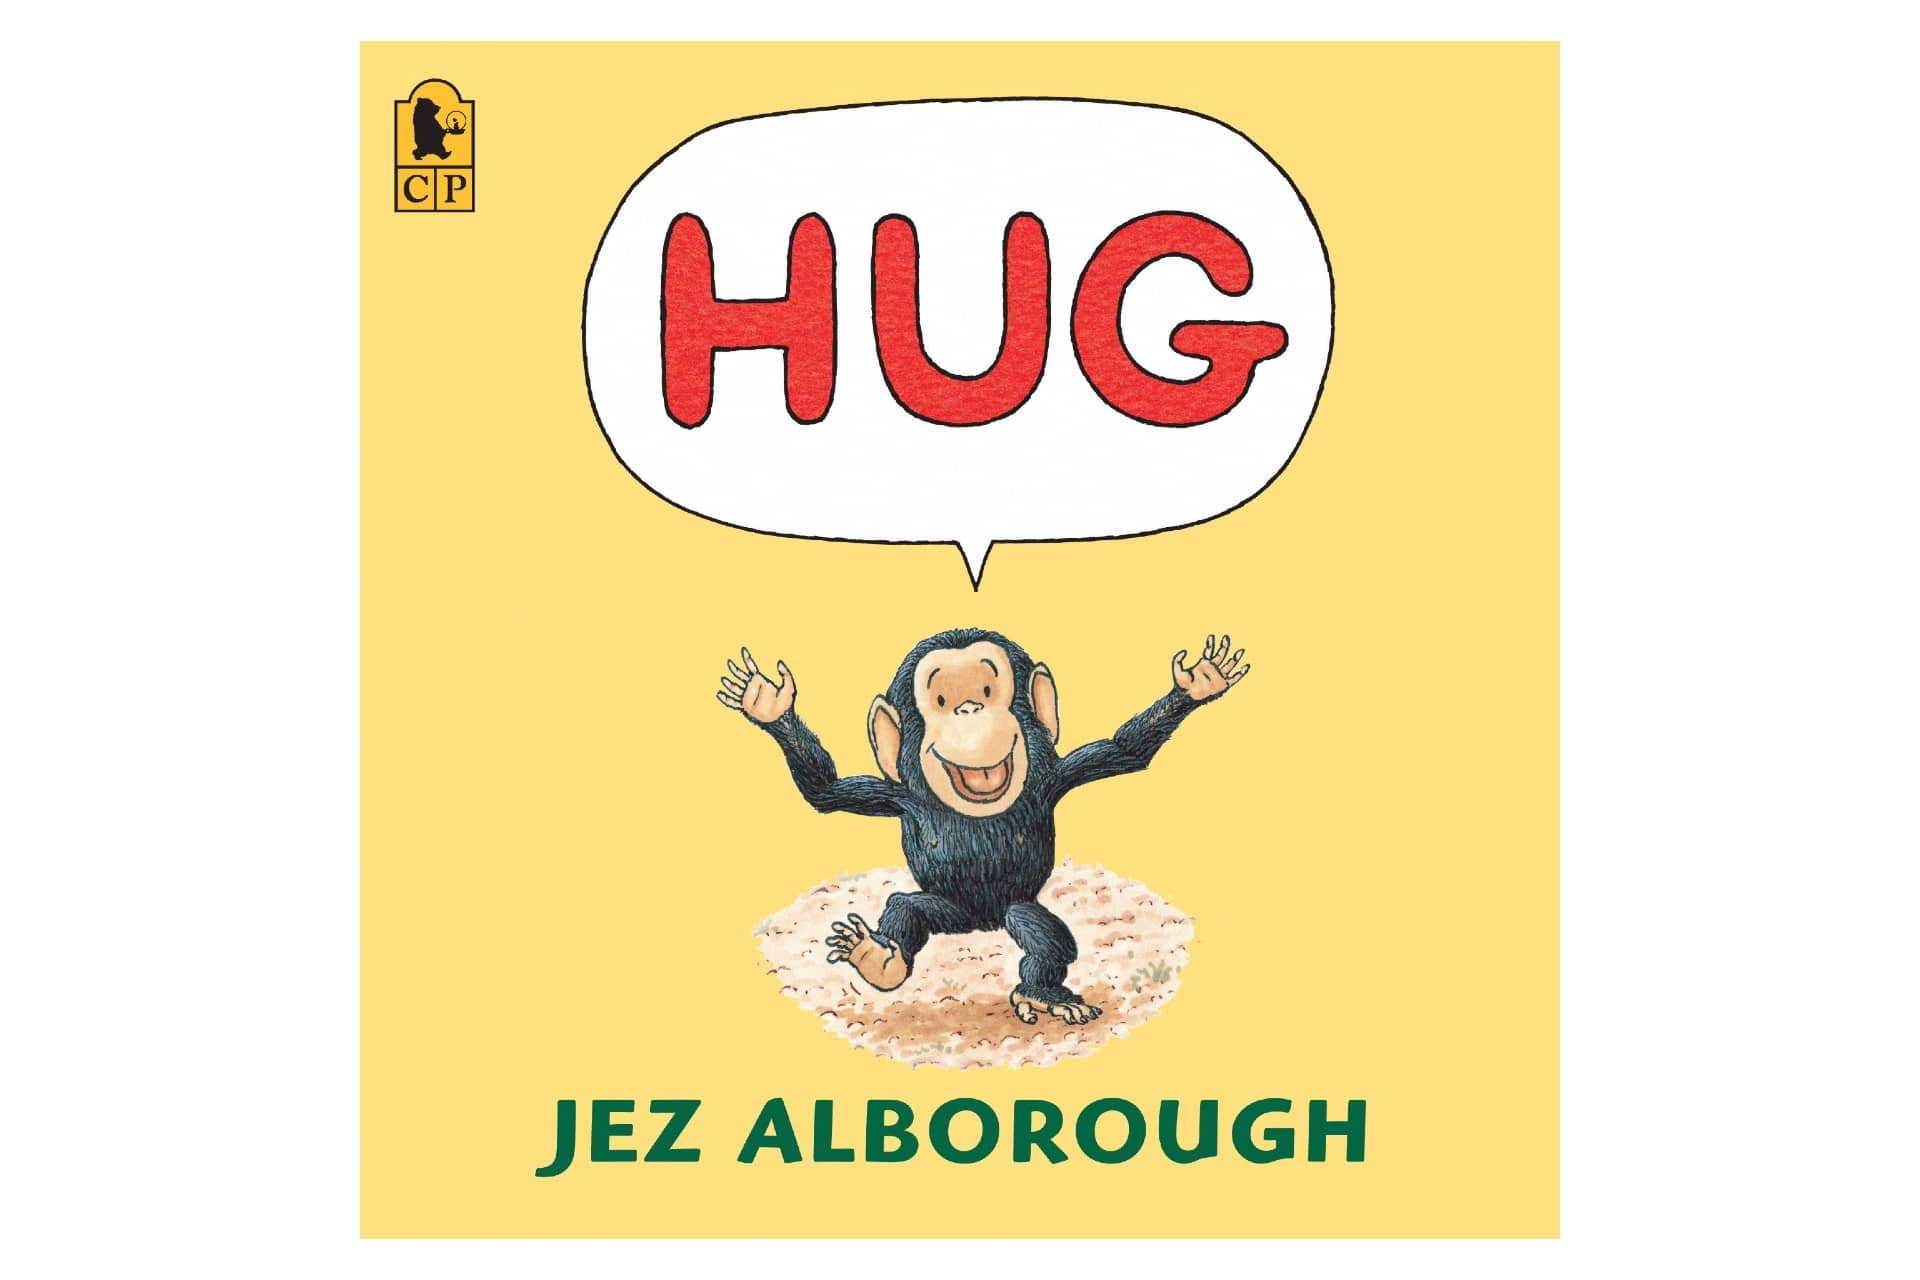 Yellow book with a monkey saying